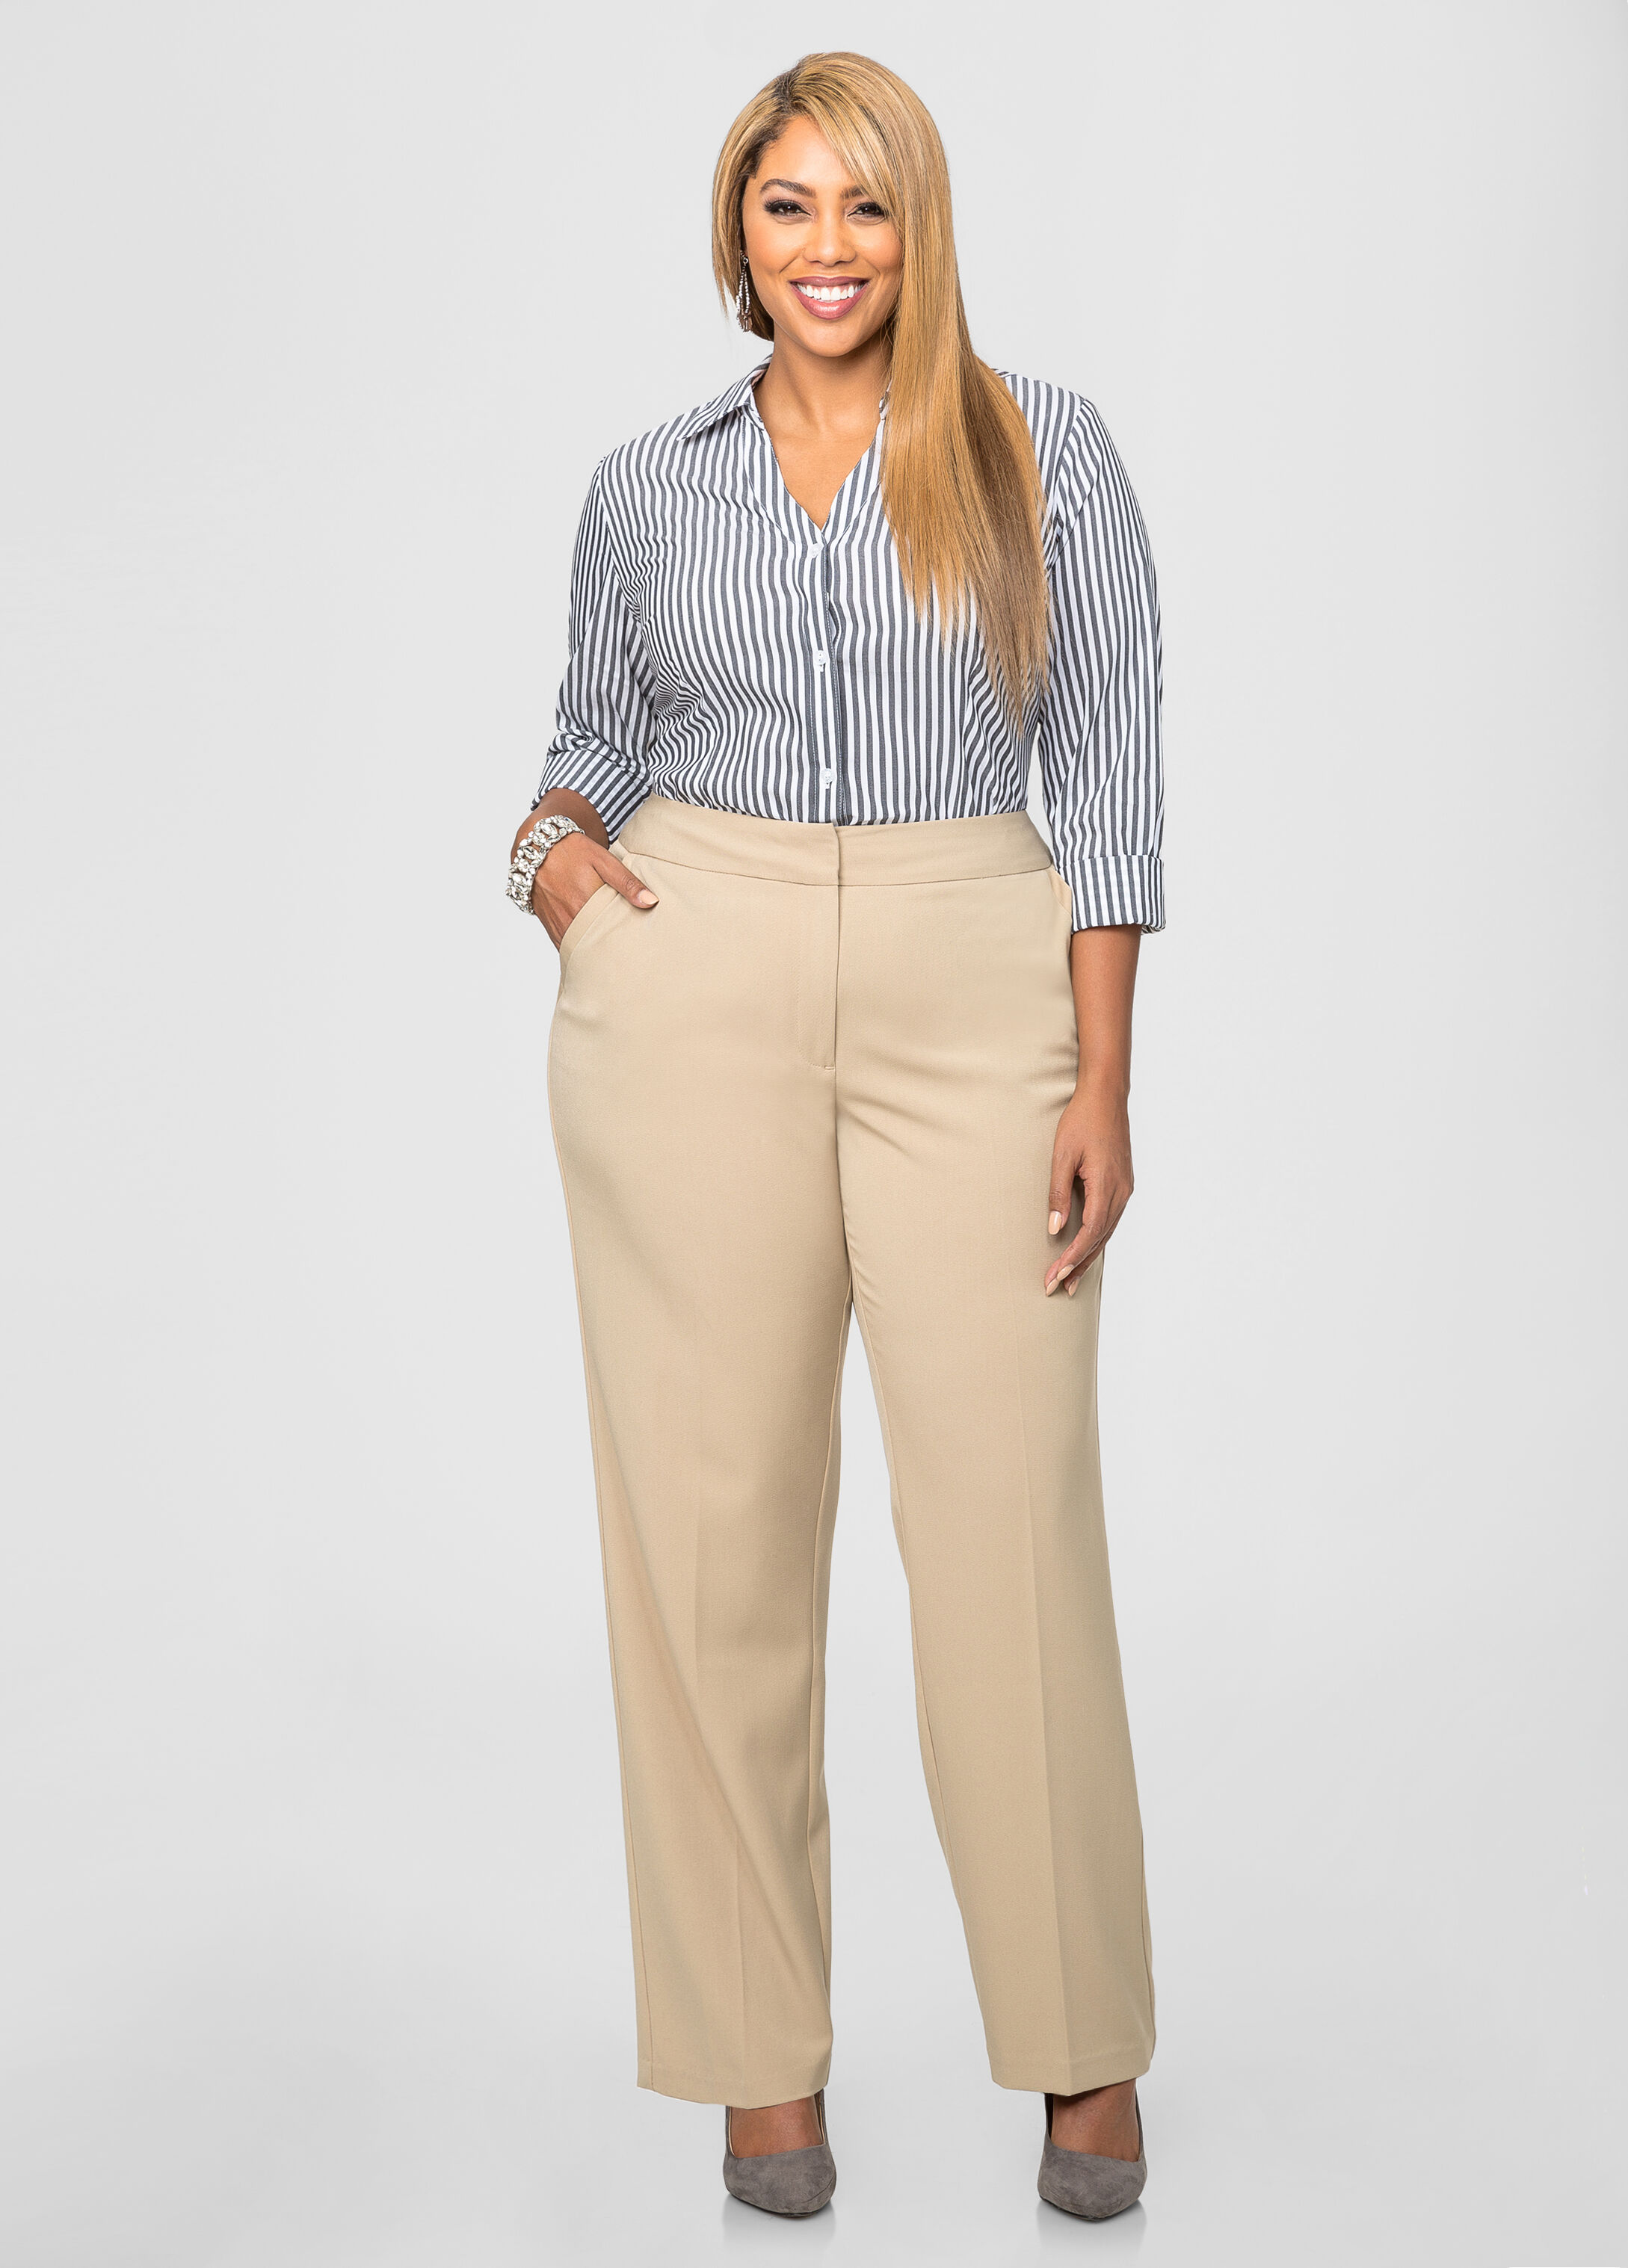 Find great deals on eBay for womens plus size khaki pants. Shop with confidence.